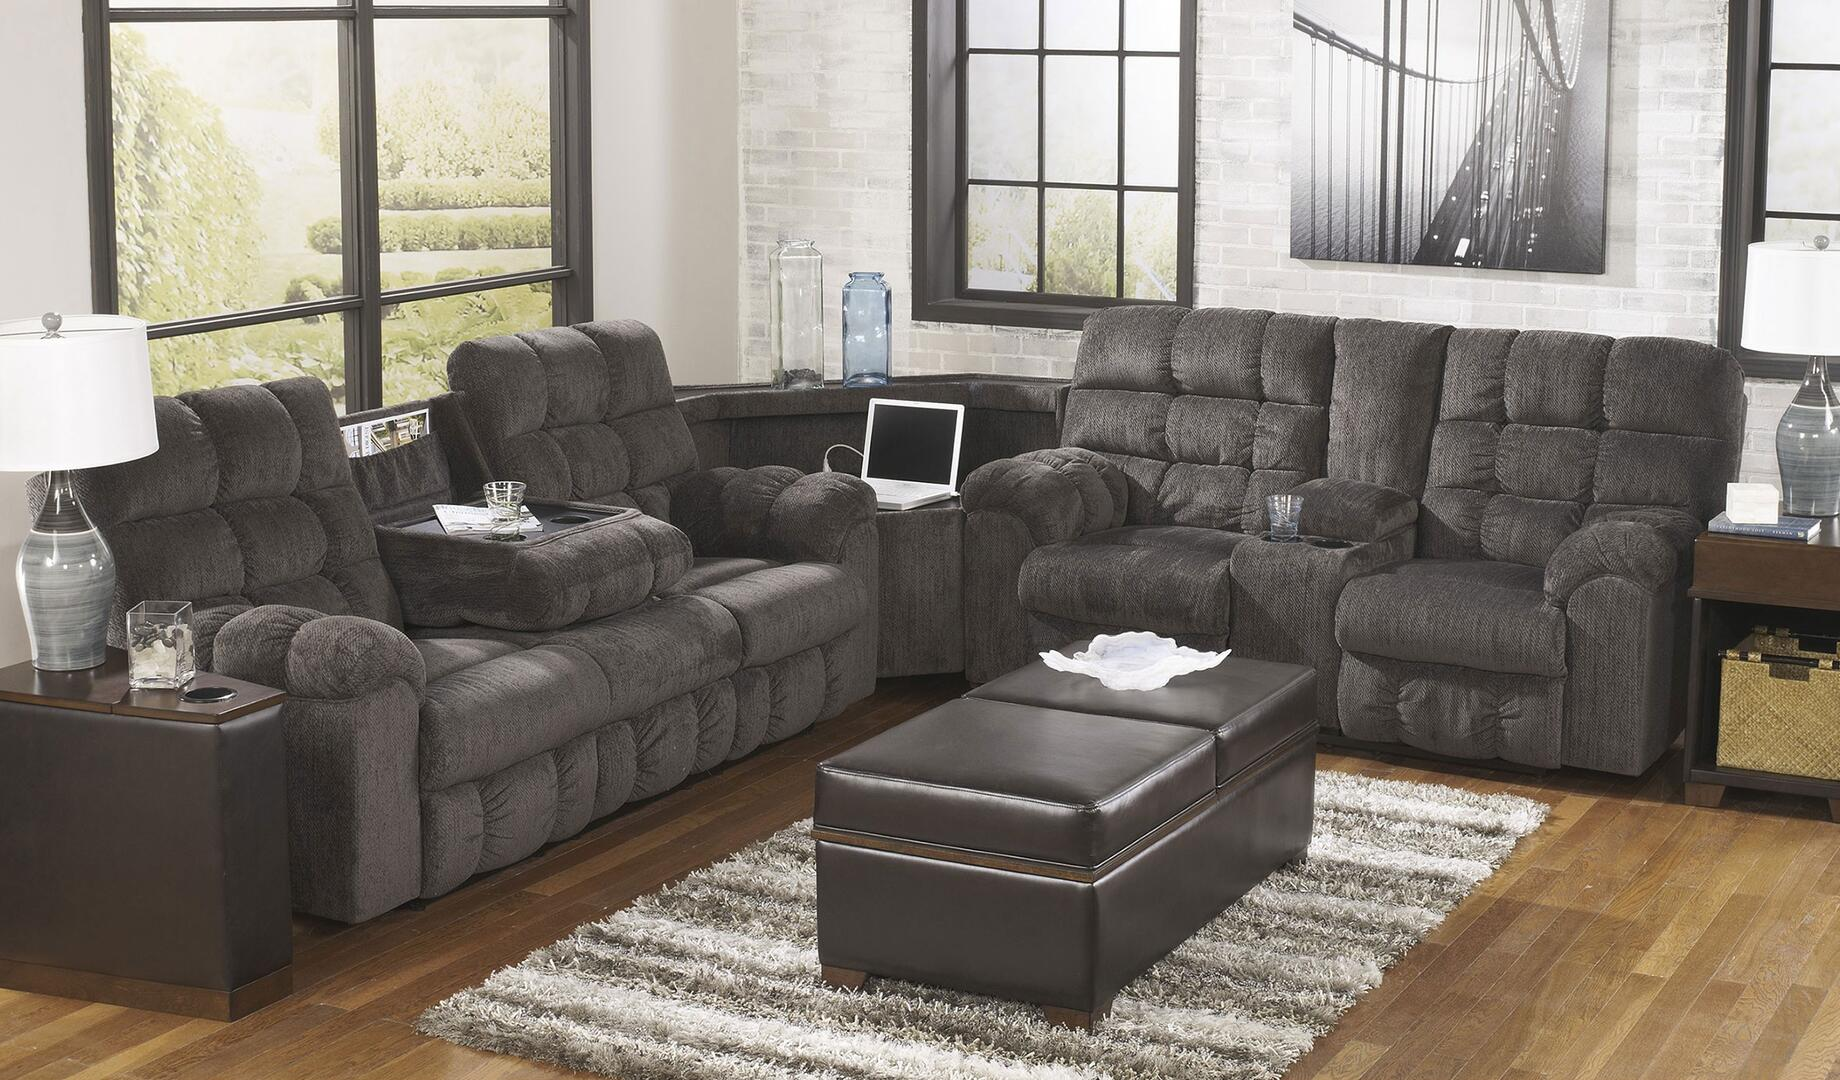 100 Klaussner Sectional Sofa U0026 Ashburn